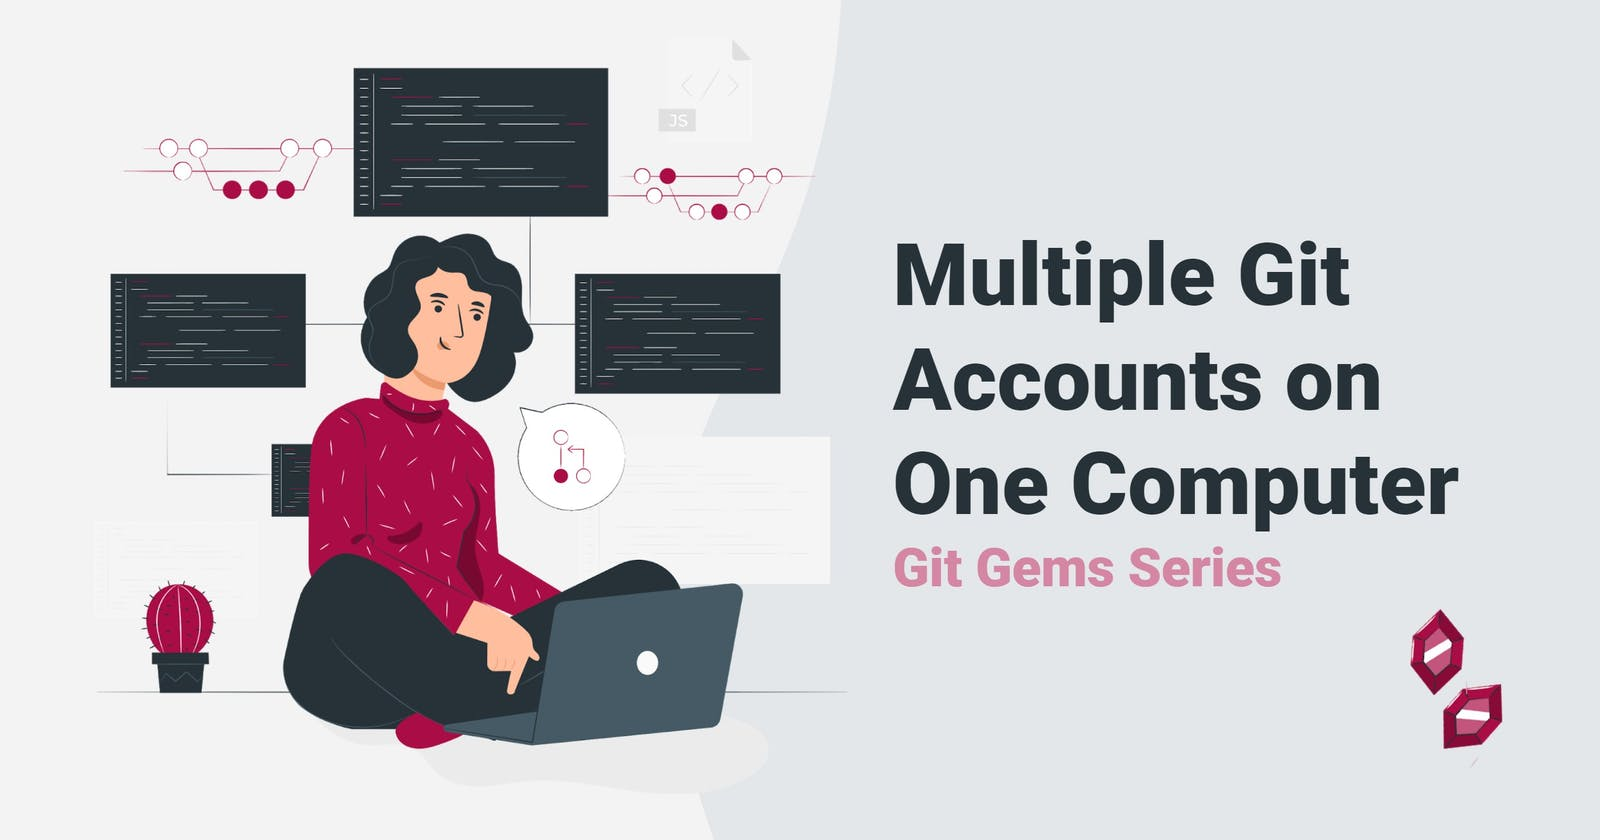 Multiple Git Accounts on One Computer